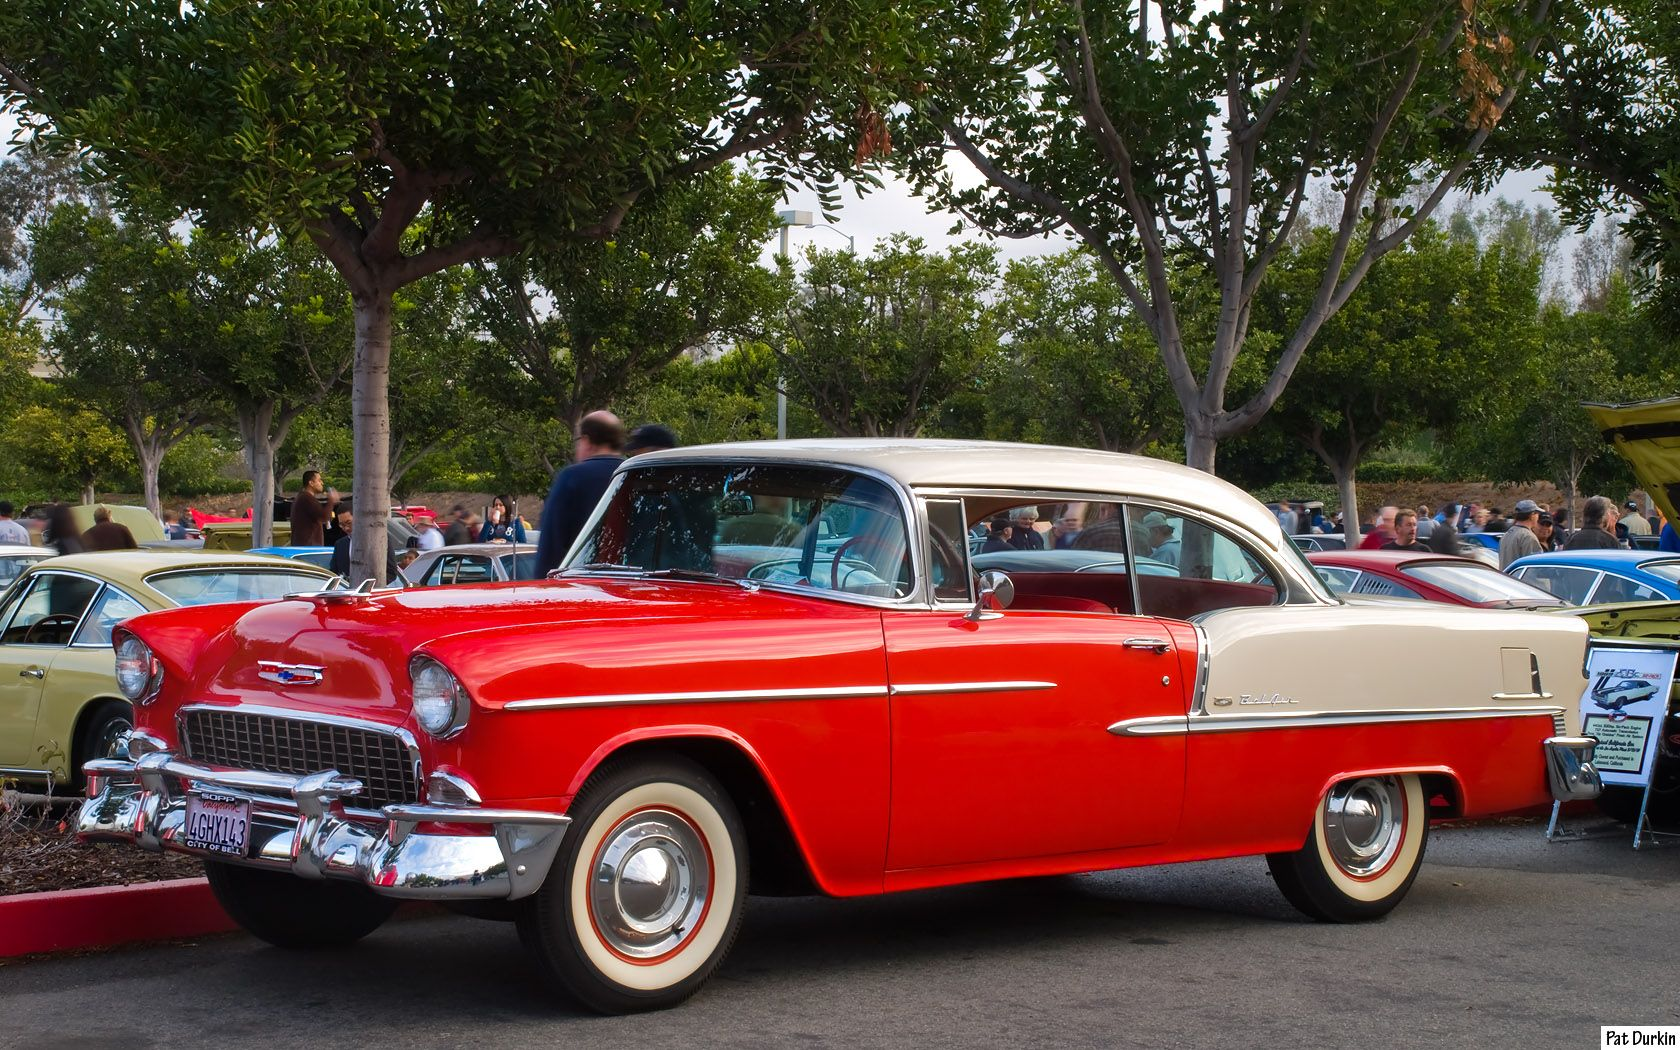 1956 bel air for sale submited images - 1955 Chevrolet Bel Air Sport Coupe Images Pictures And Videos